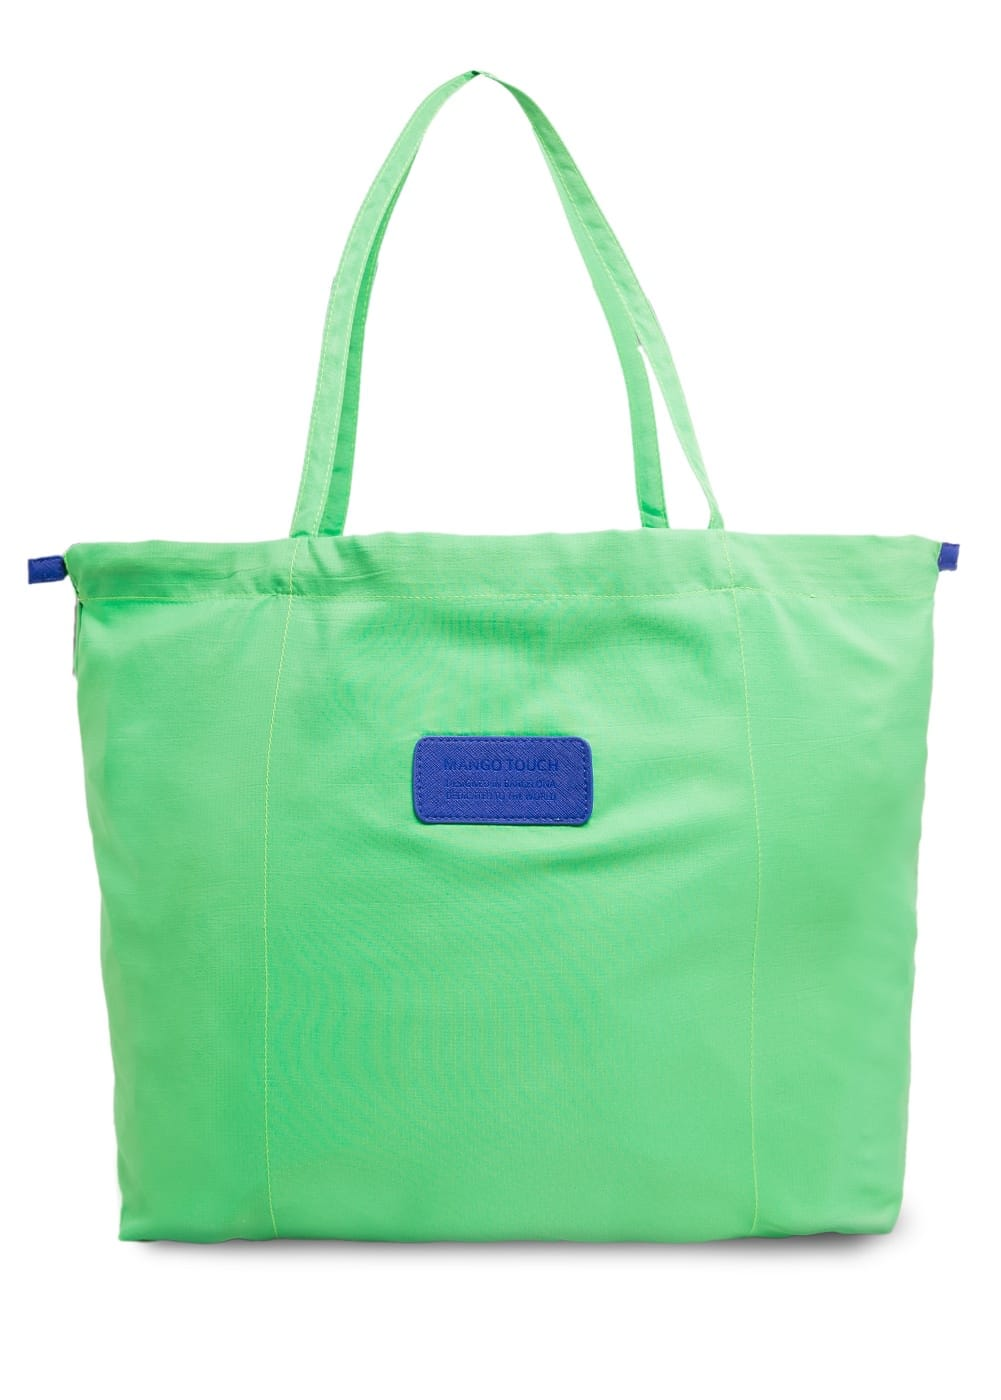 Drawstring shopper bag